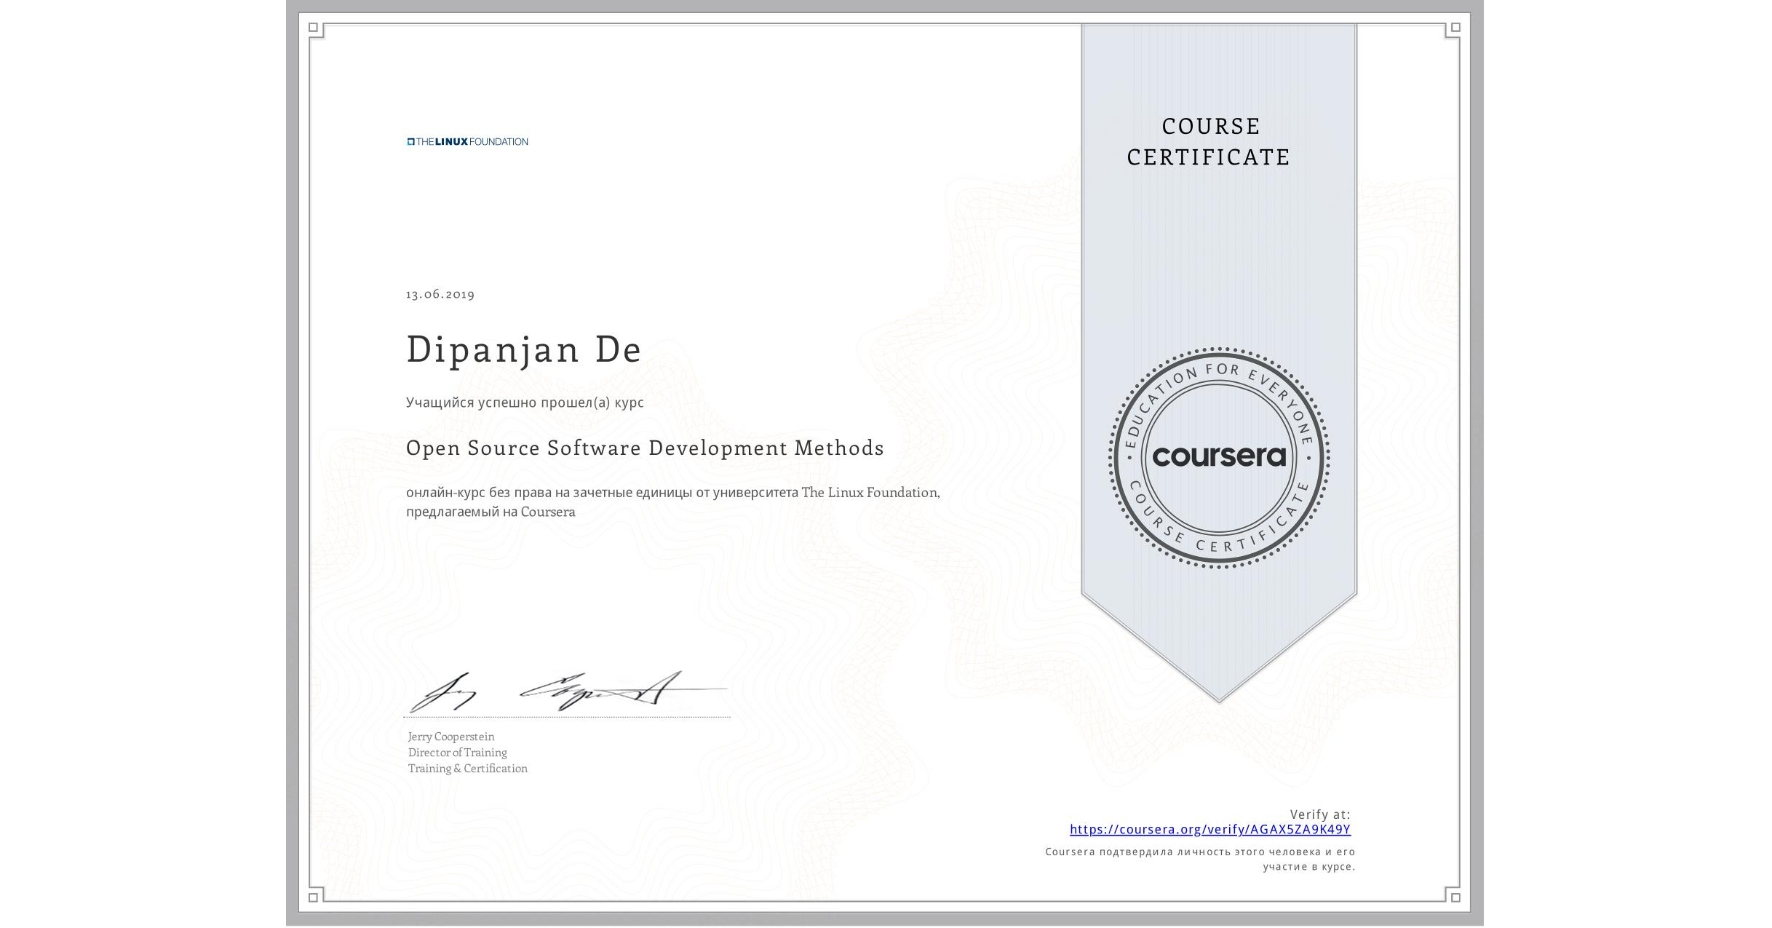 View certificate for Dipanjan De, Open Source Software Development Methods, an online non-credit course authorized by The Linux Foundation and offered through Coursera